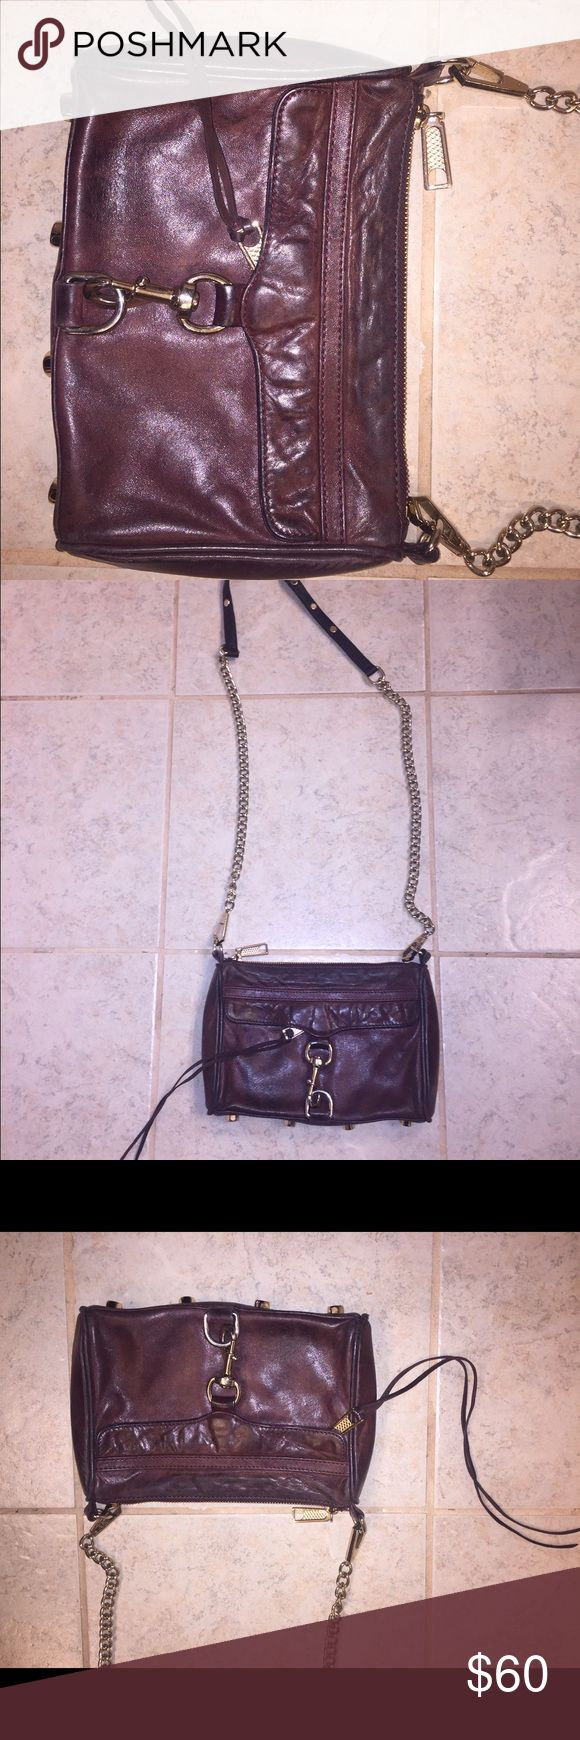 Rebecca Minkoff Leather cross body purse Burgundy Leather Rebecca Minkoff Leather Purse. Cross body style. Leather has a distressed look but Purse is in great condition. Removable strap. Brass hardware. Rebecca Minkoff Bags Crossbody Bags